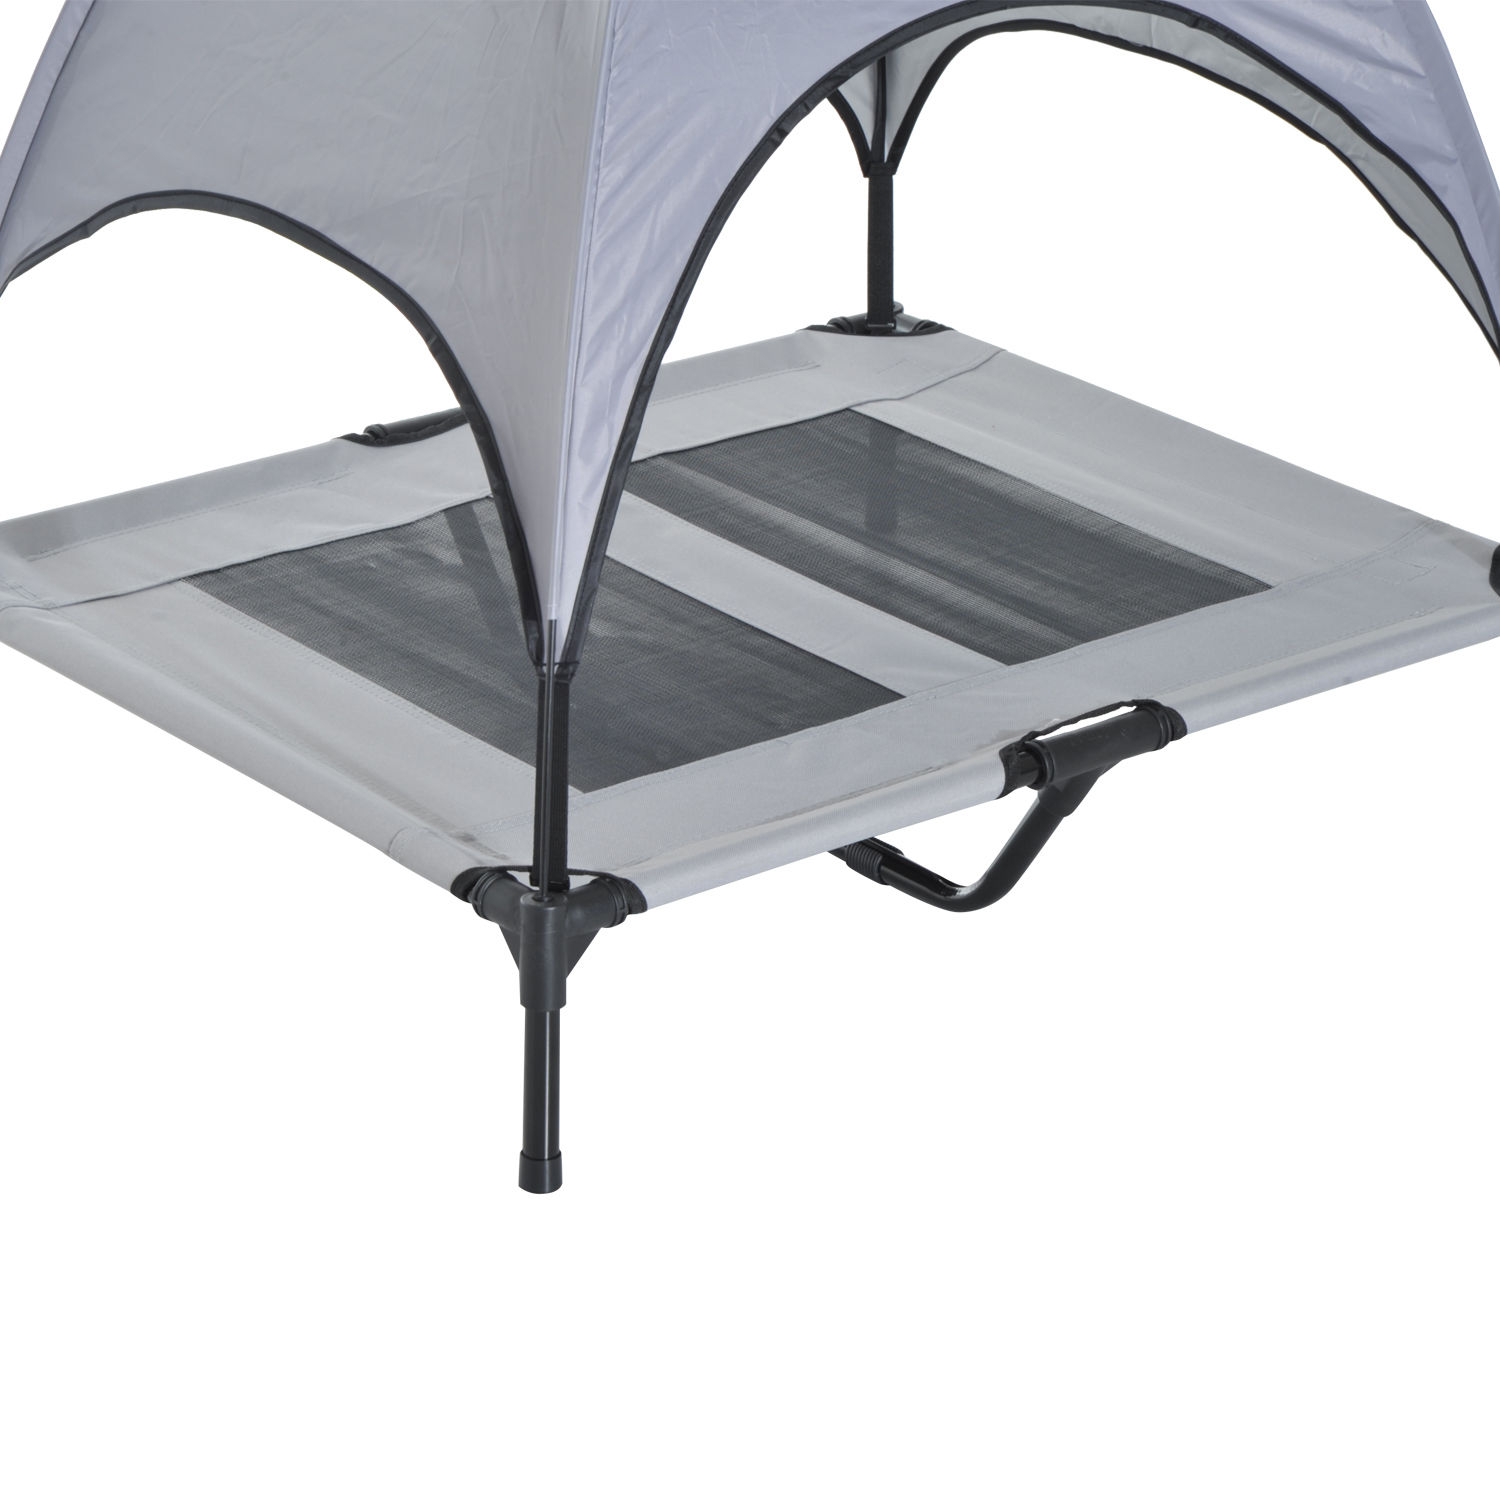 PawHut-Elevated-Pet-Bed-Dog-Foldable-Cot-Tent-Canopy-Instant-Shelter-Outdoor thumbnail 18